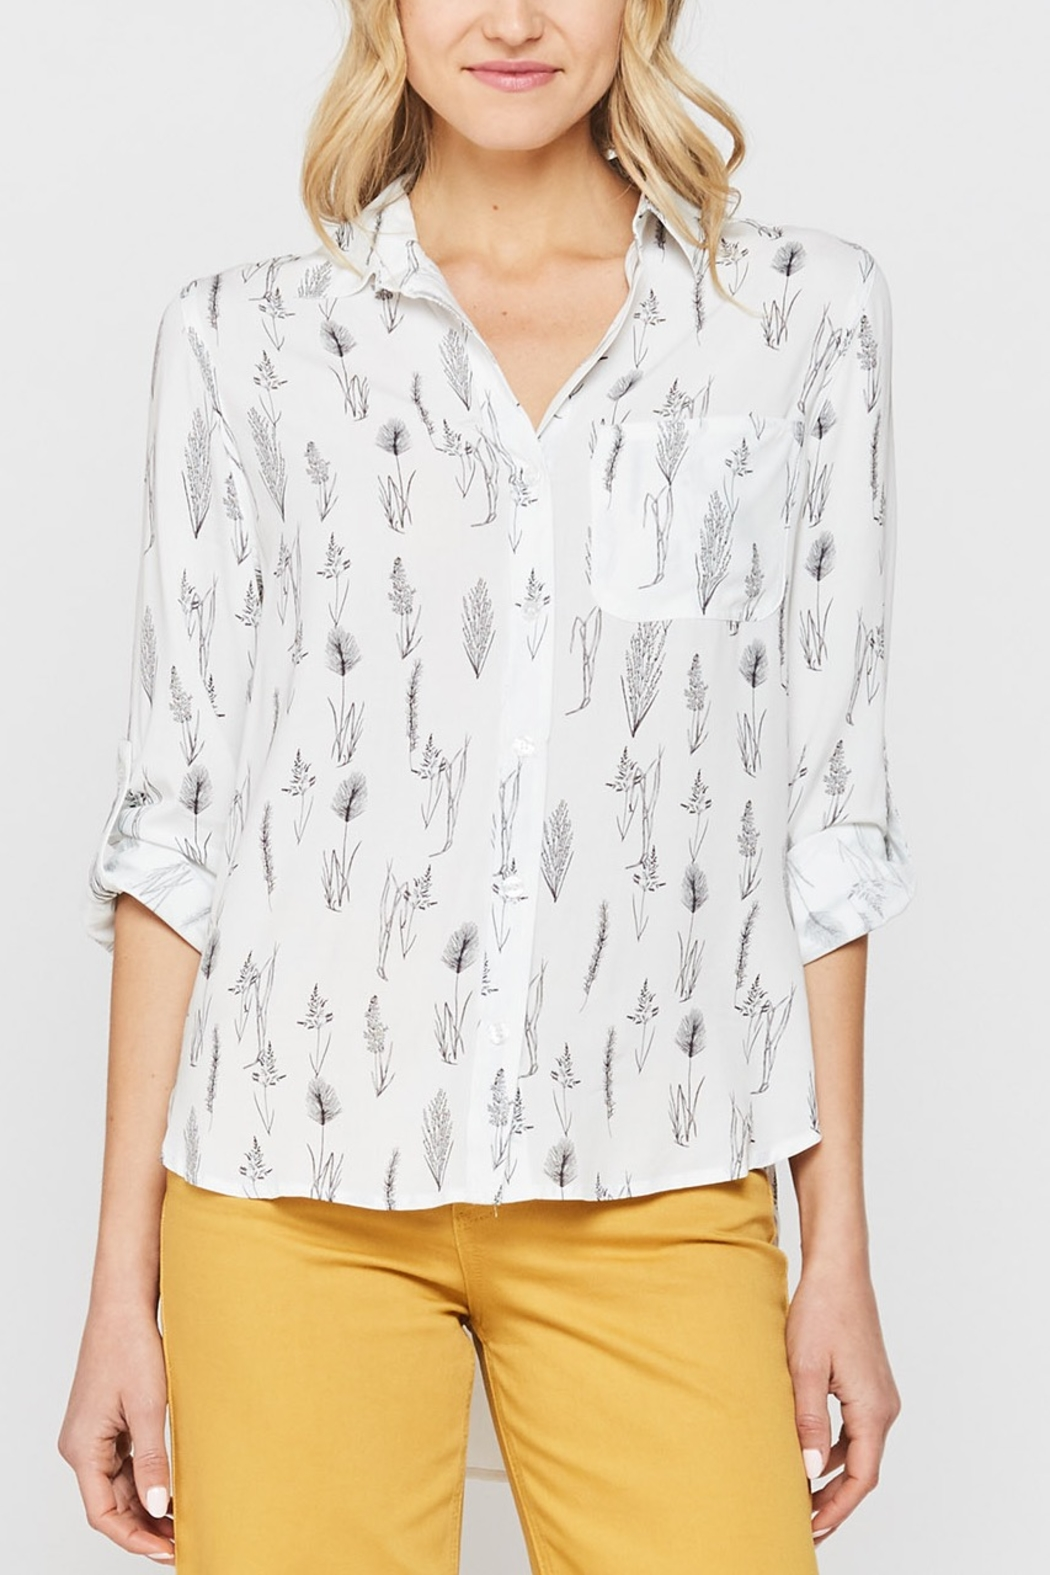 Velvet Heart Elisa Button Down Shirt - Front Cropped Image